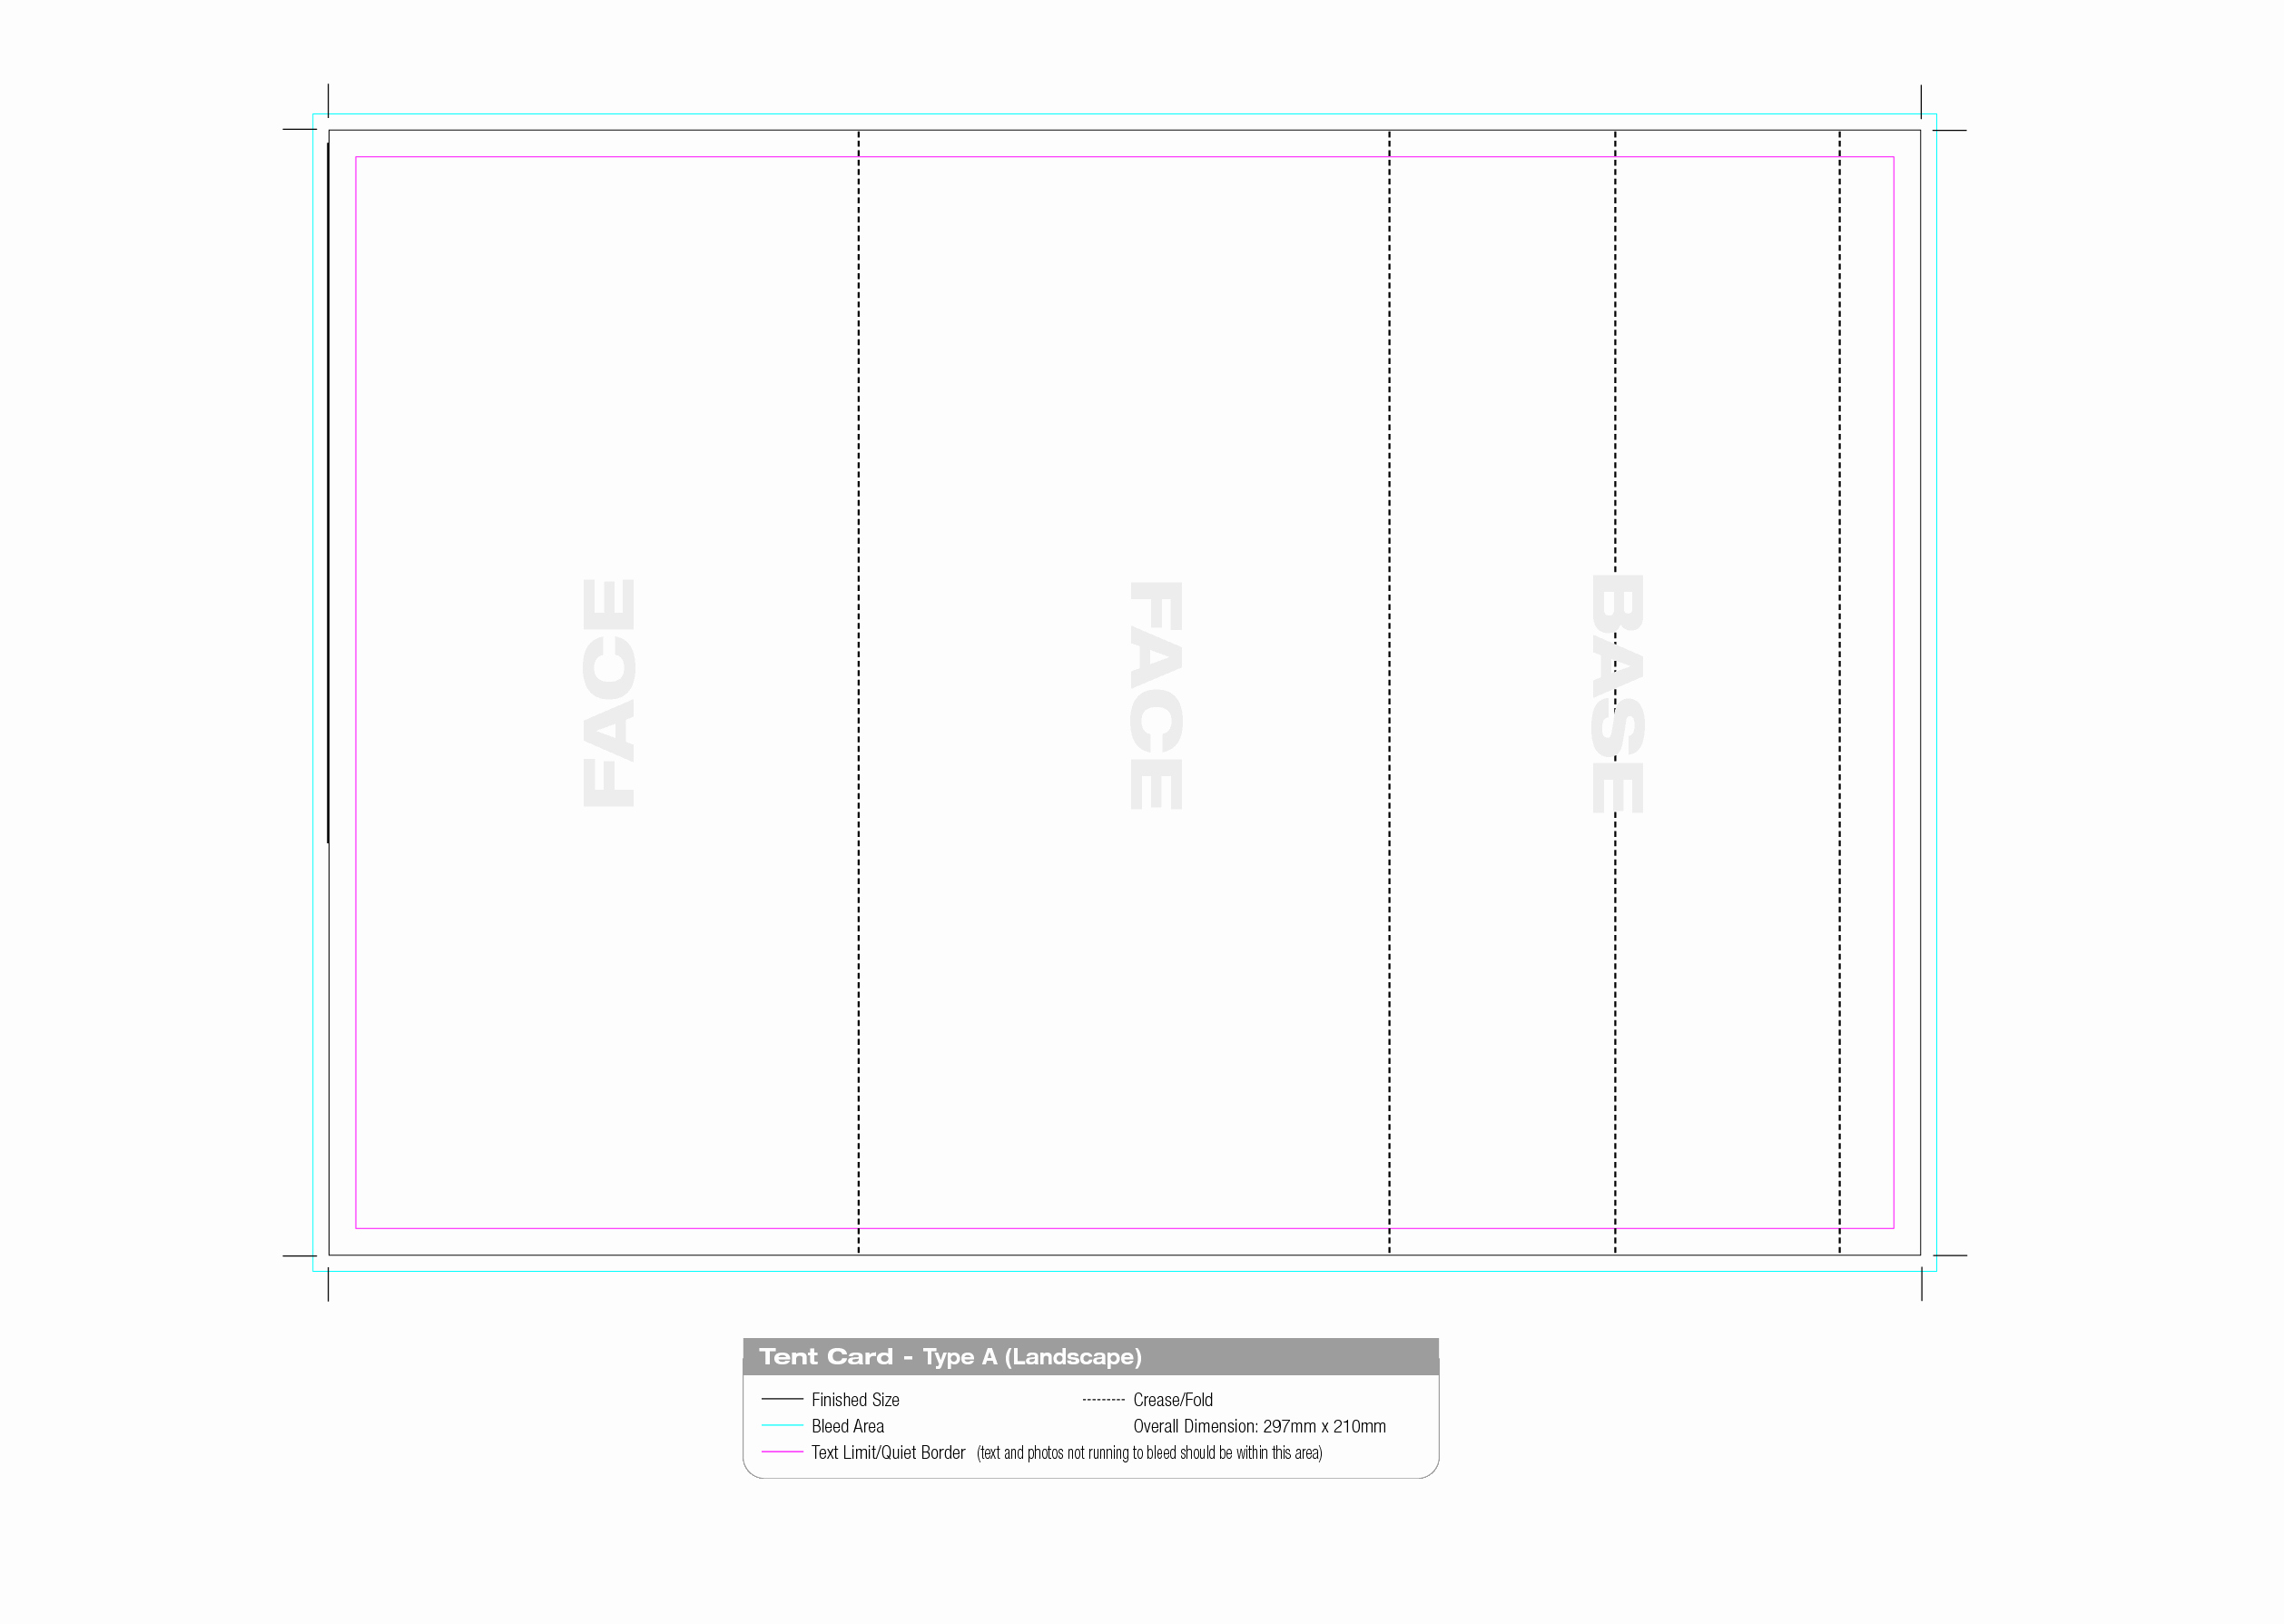 Printing Tent Cards In Word Inspirational Tent Card Template